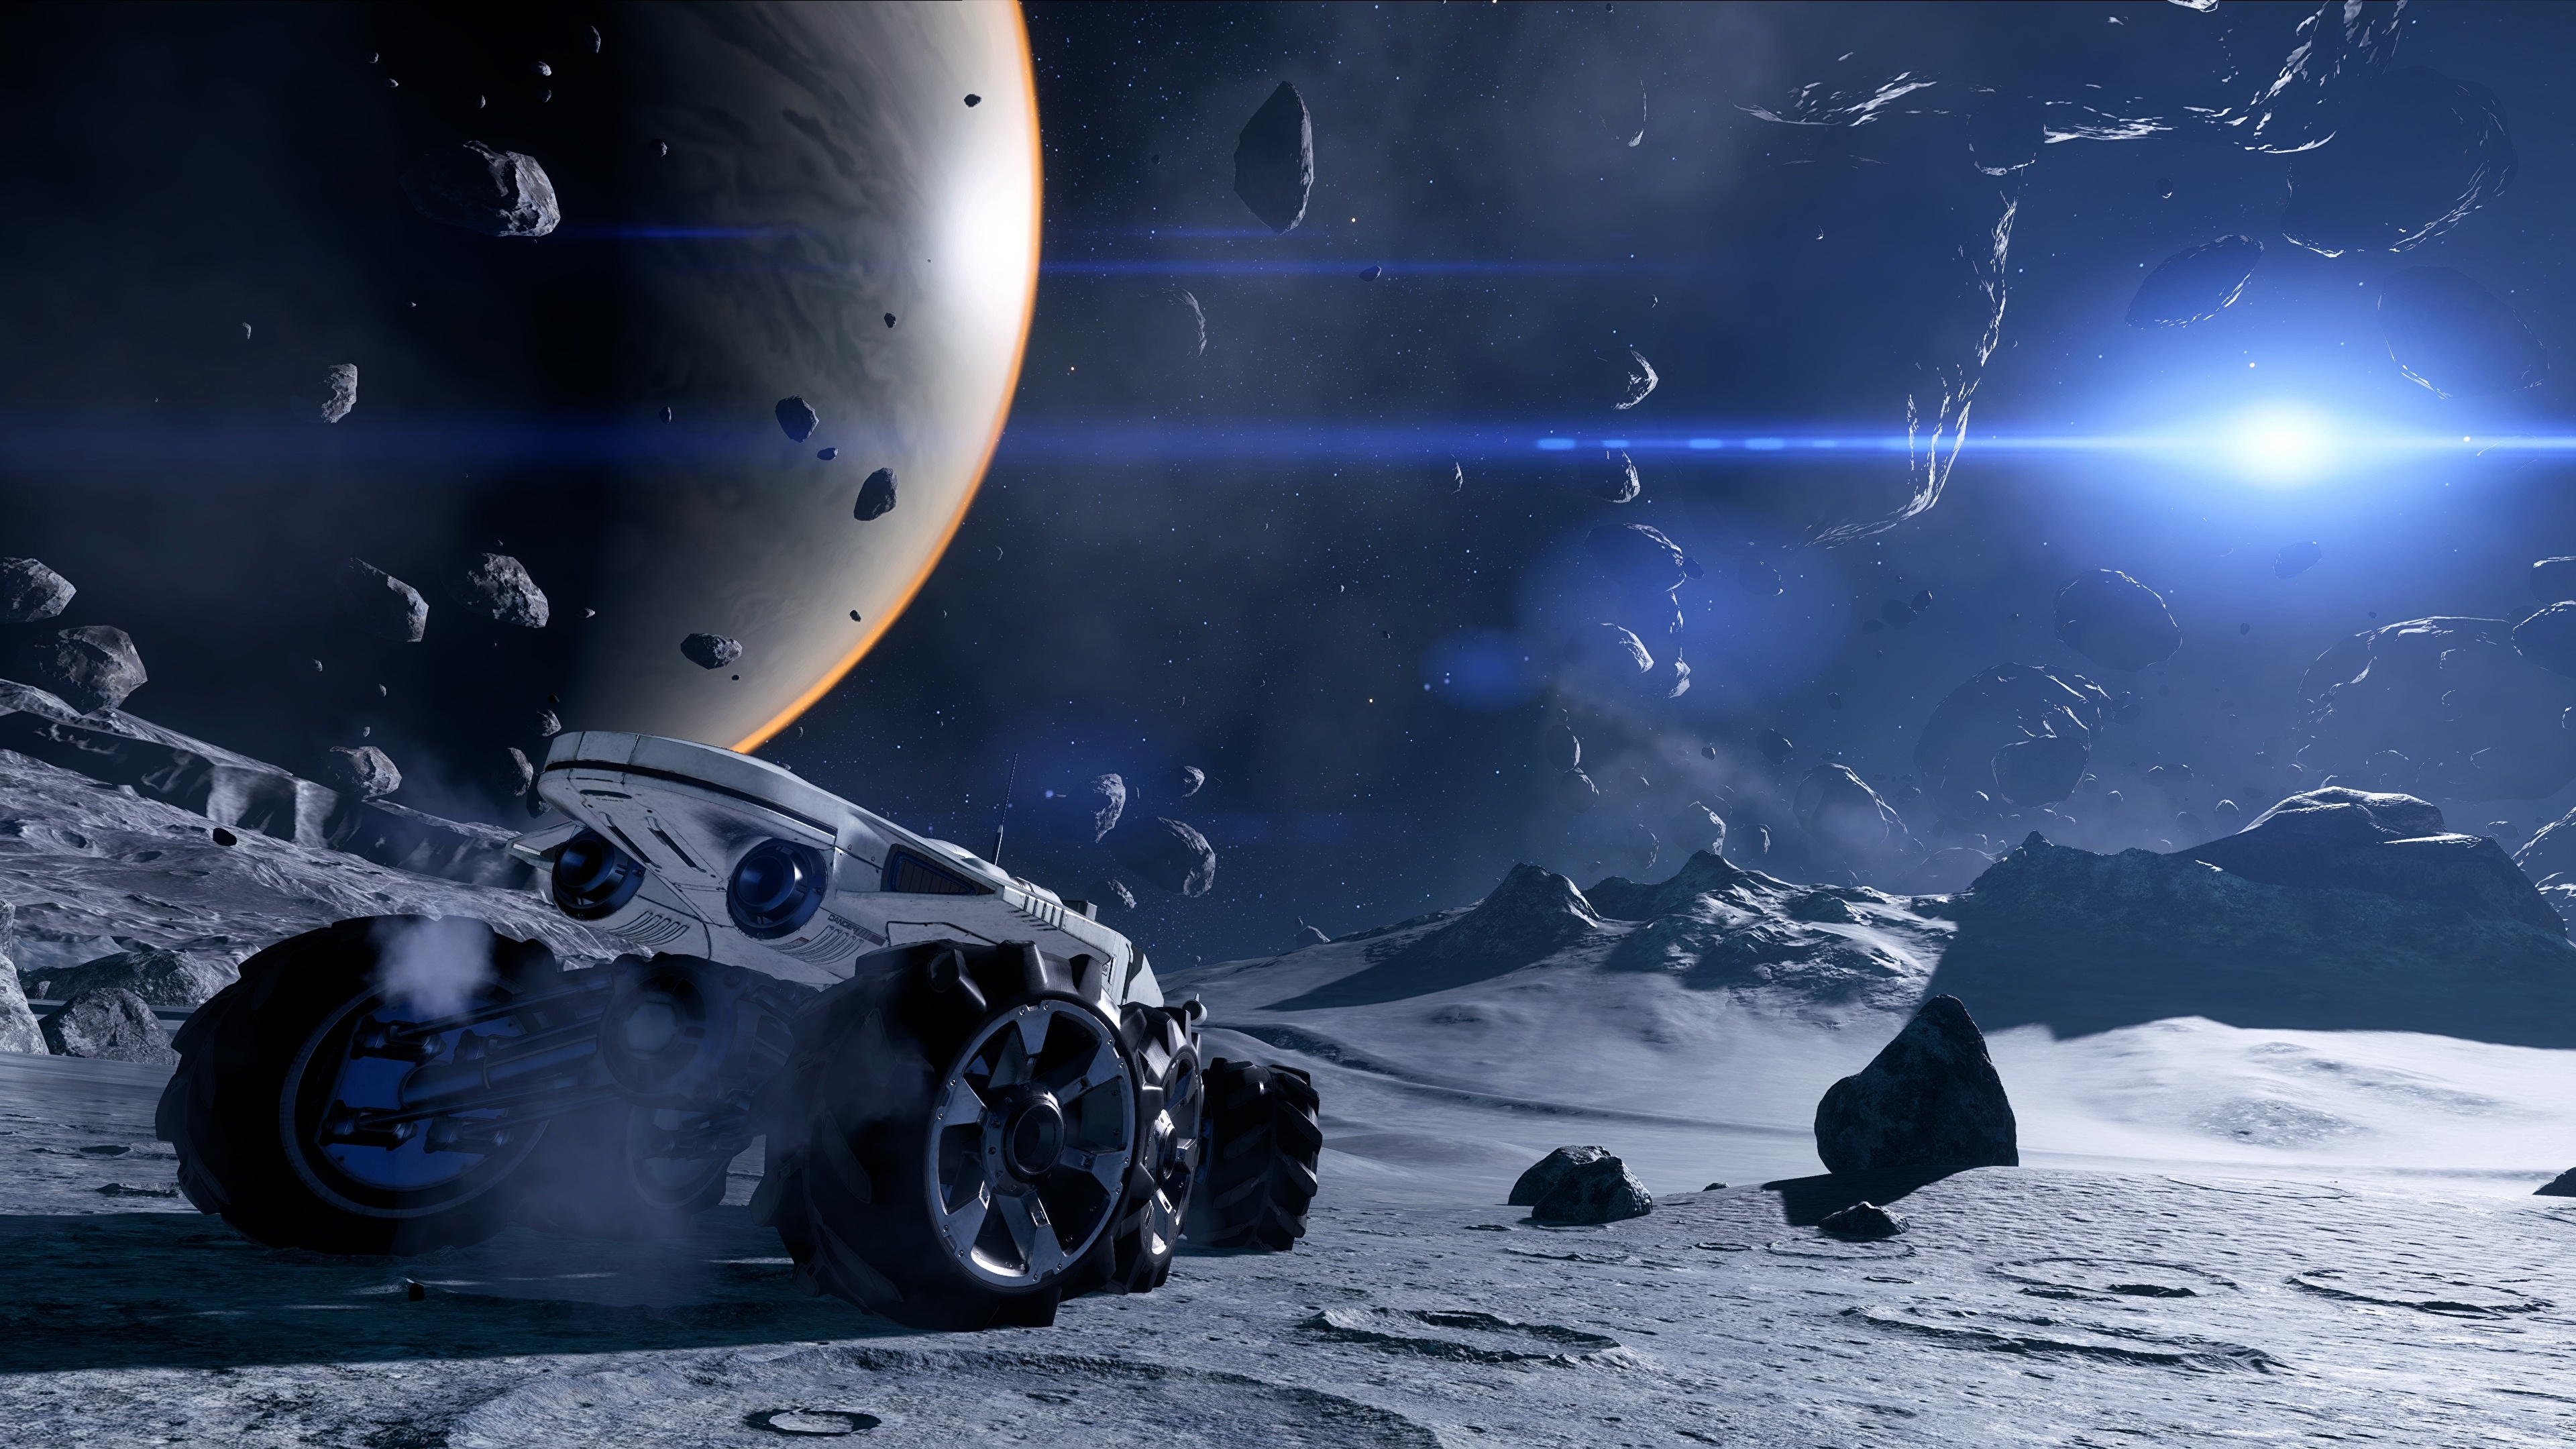 Photos Mass Effect Planets Surface Of Planets Andromeda 3d 3840x2160